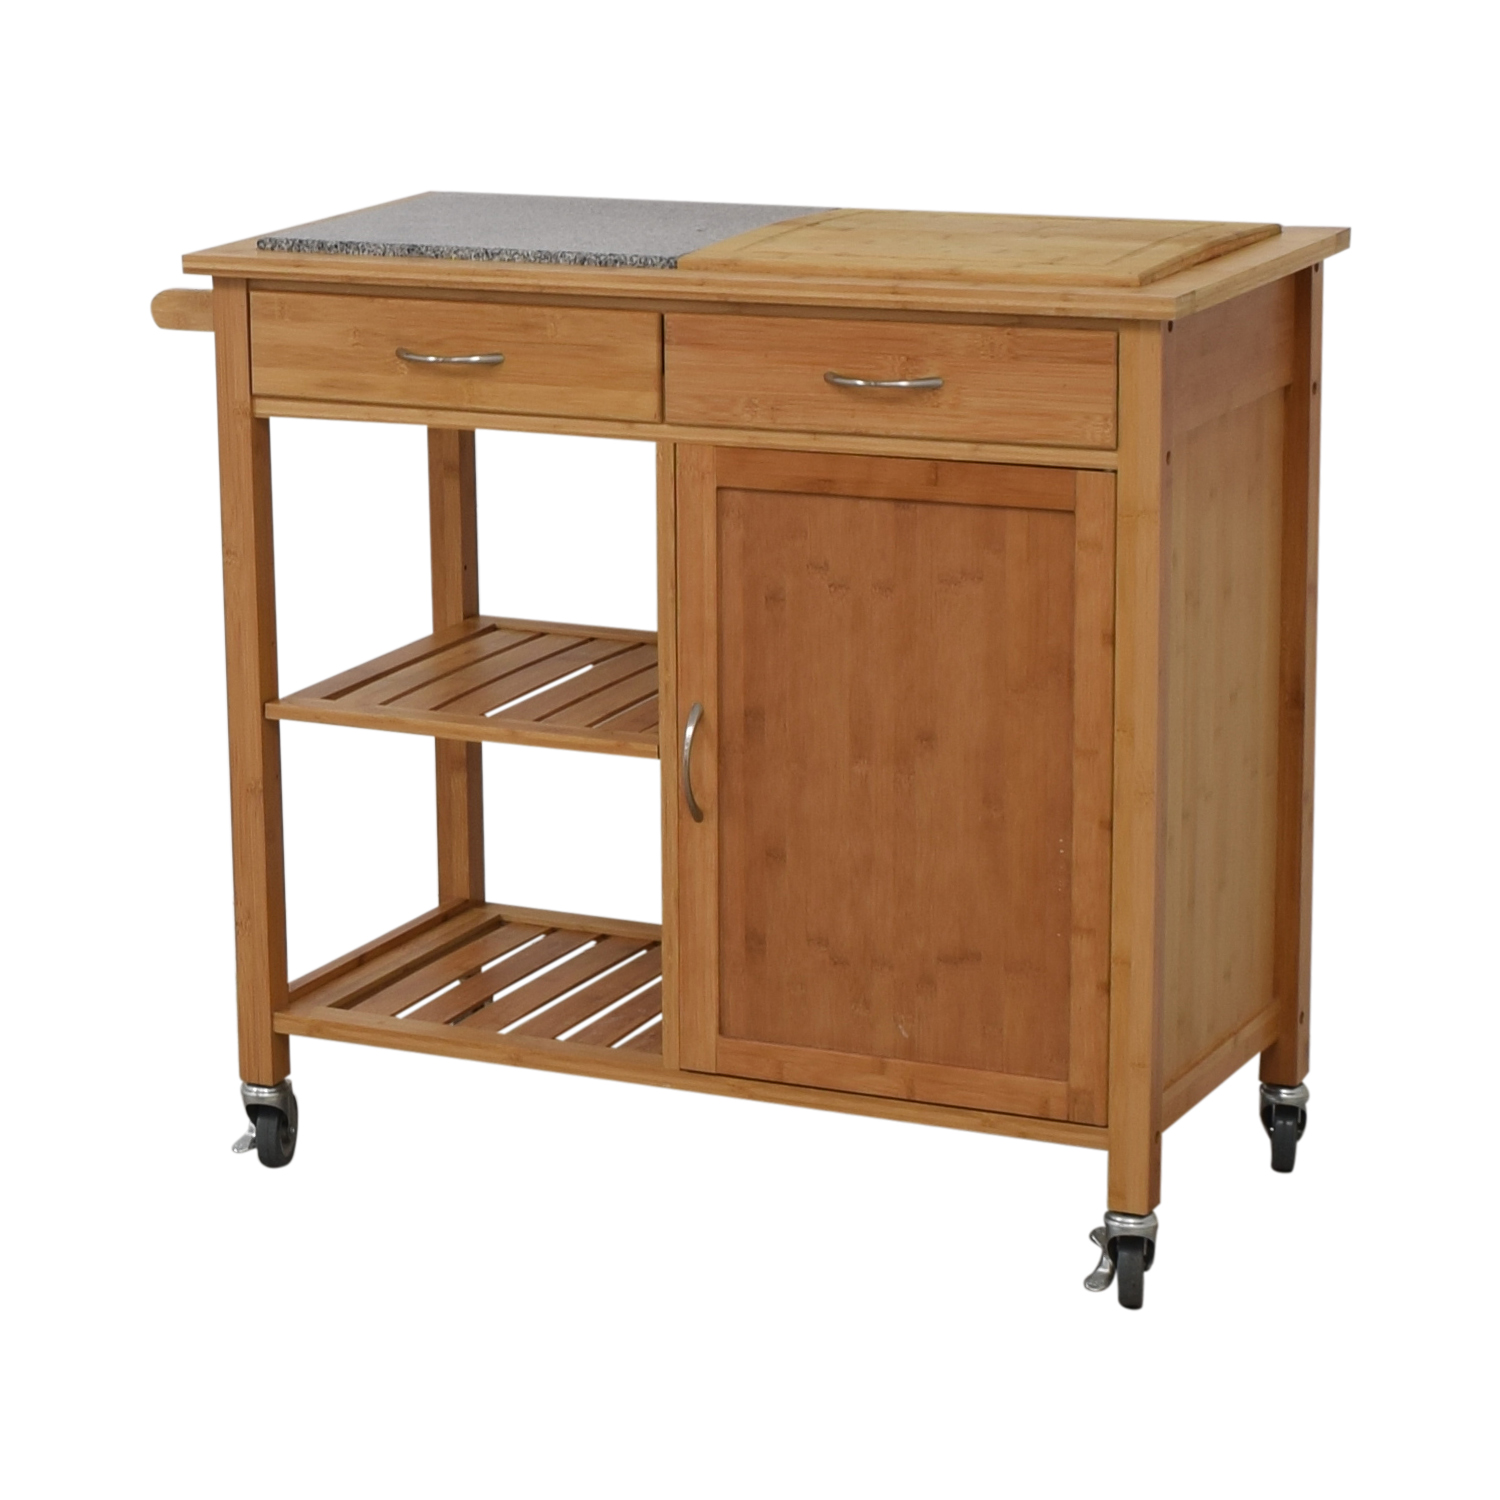 Linon Home Linon Home Bamboo Rolling Kitchen Island wood